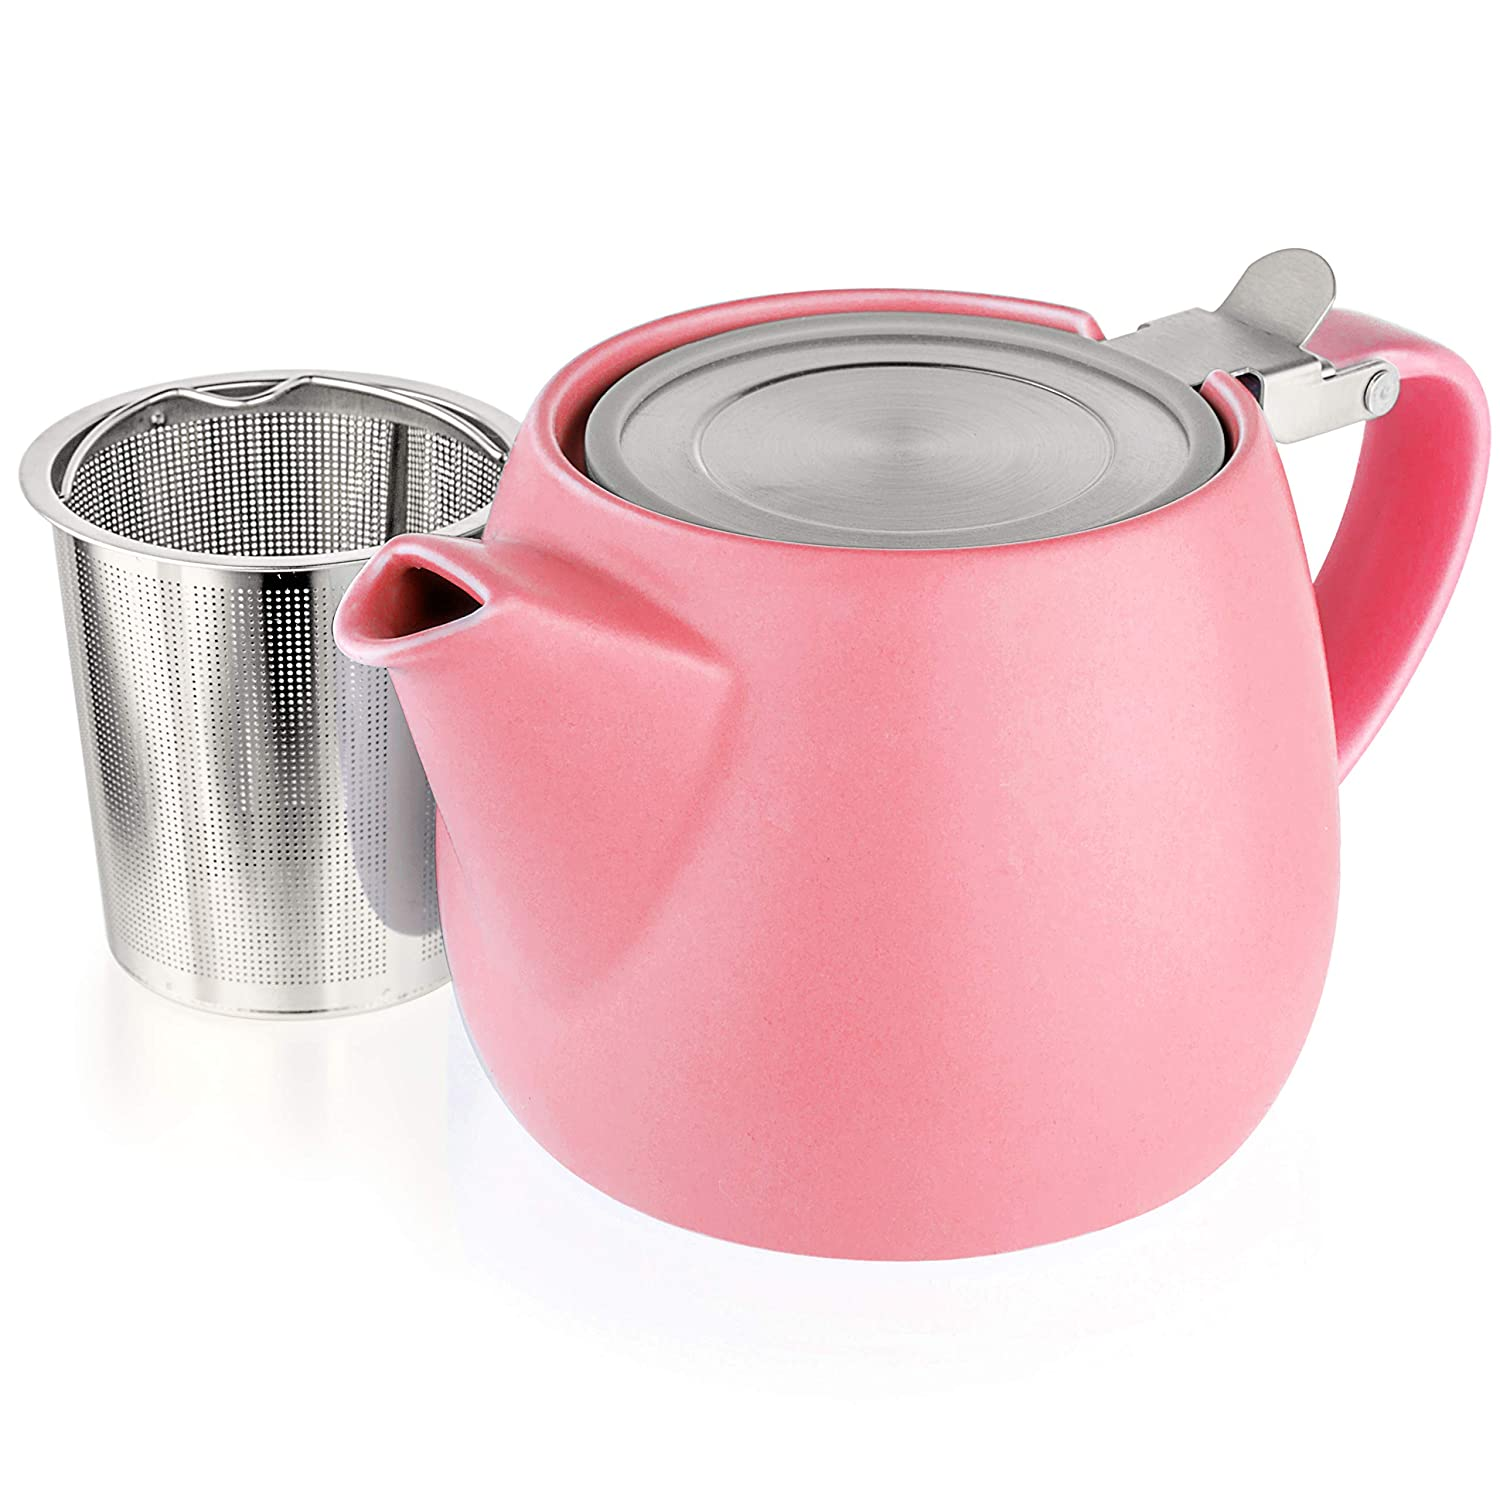 Tealyra - Pluto Porcelain Small Teapot Pink - 18.2-ounce (1-2 cups) - Matte Finish - Stainless Steel Lid and Extra-Fine Infuser To Brew Loose Leaf Tea - 540ml